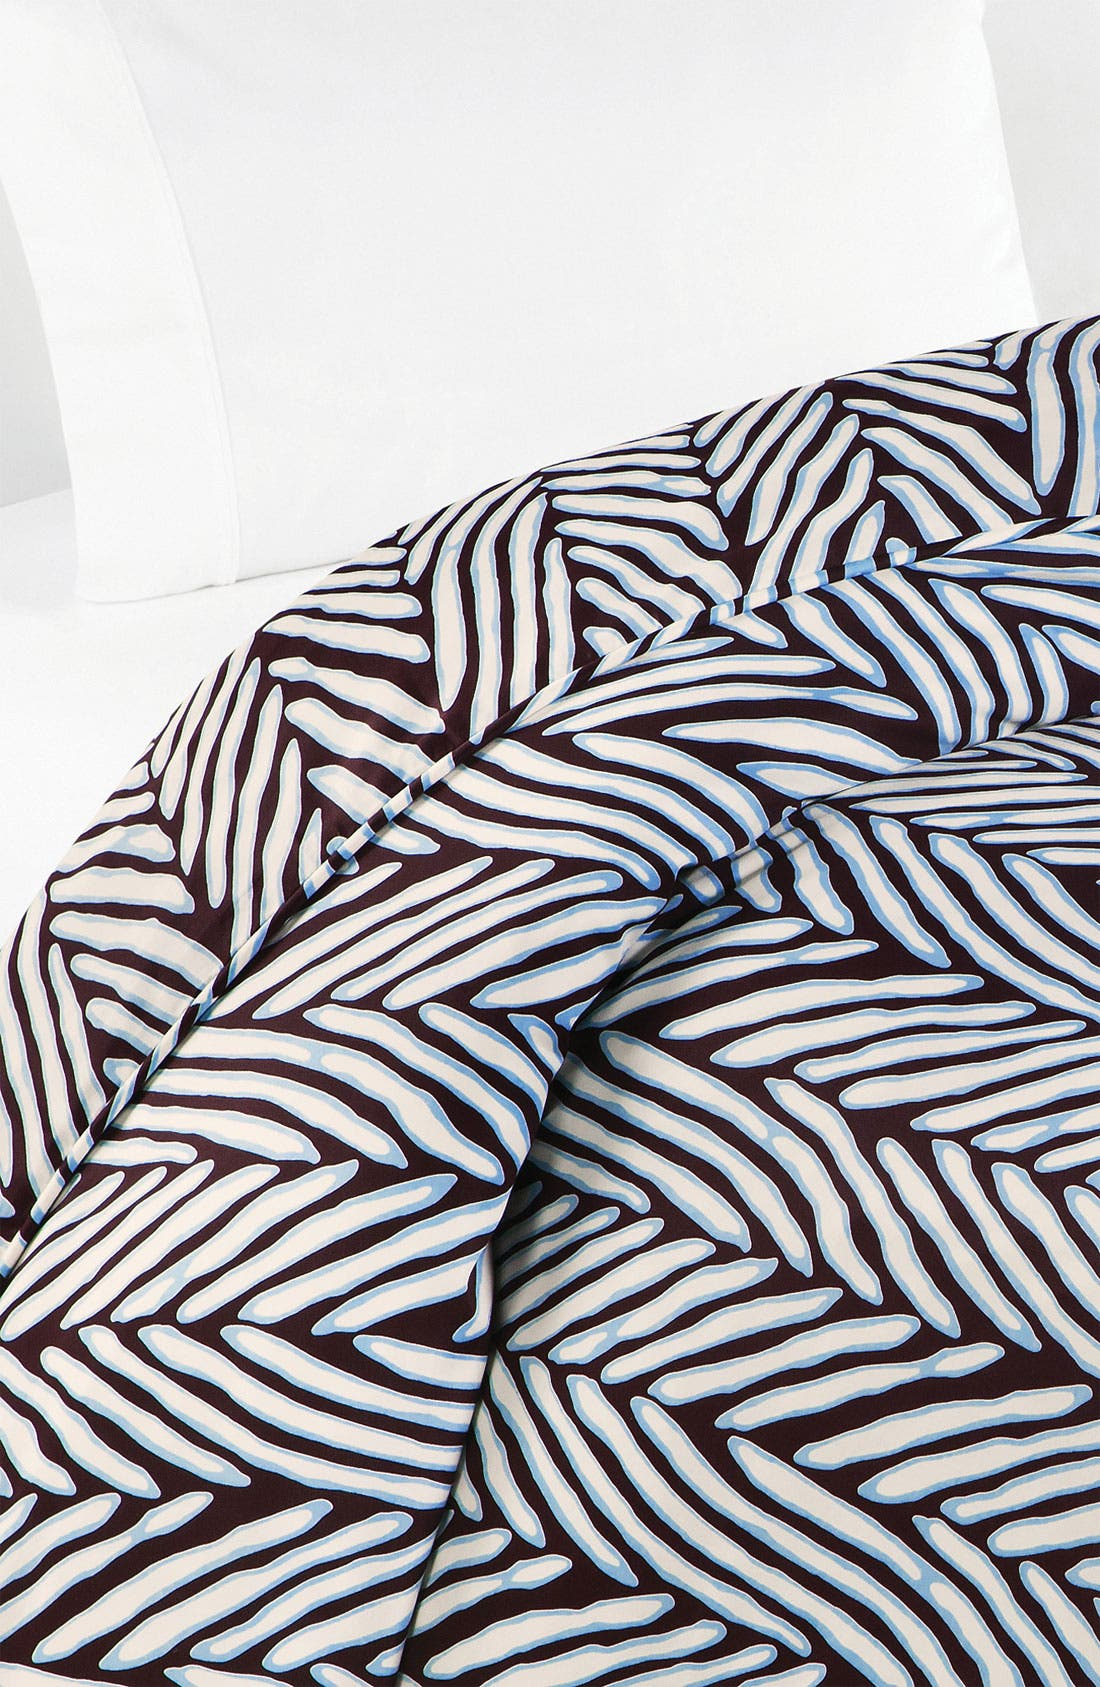 Main Image - Diane von Furstenberg 'Herringbone' 300 Thread Count Duvet Cover